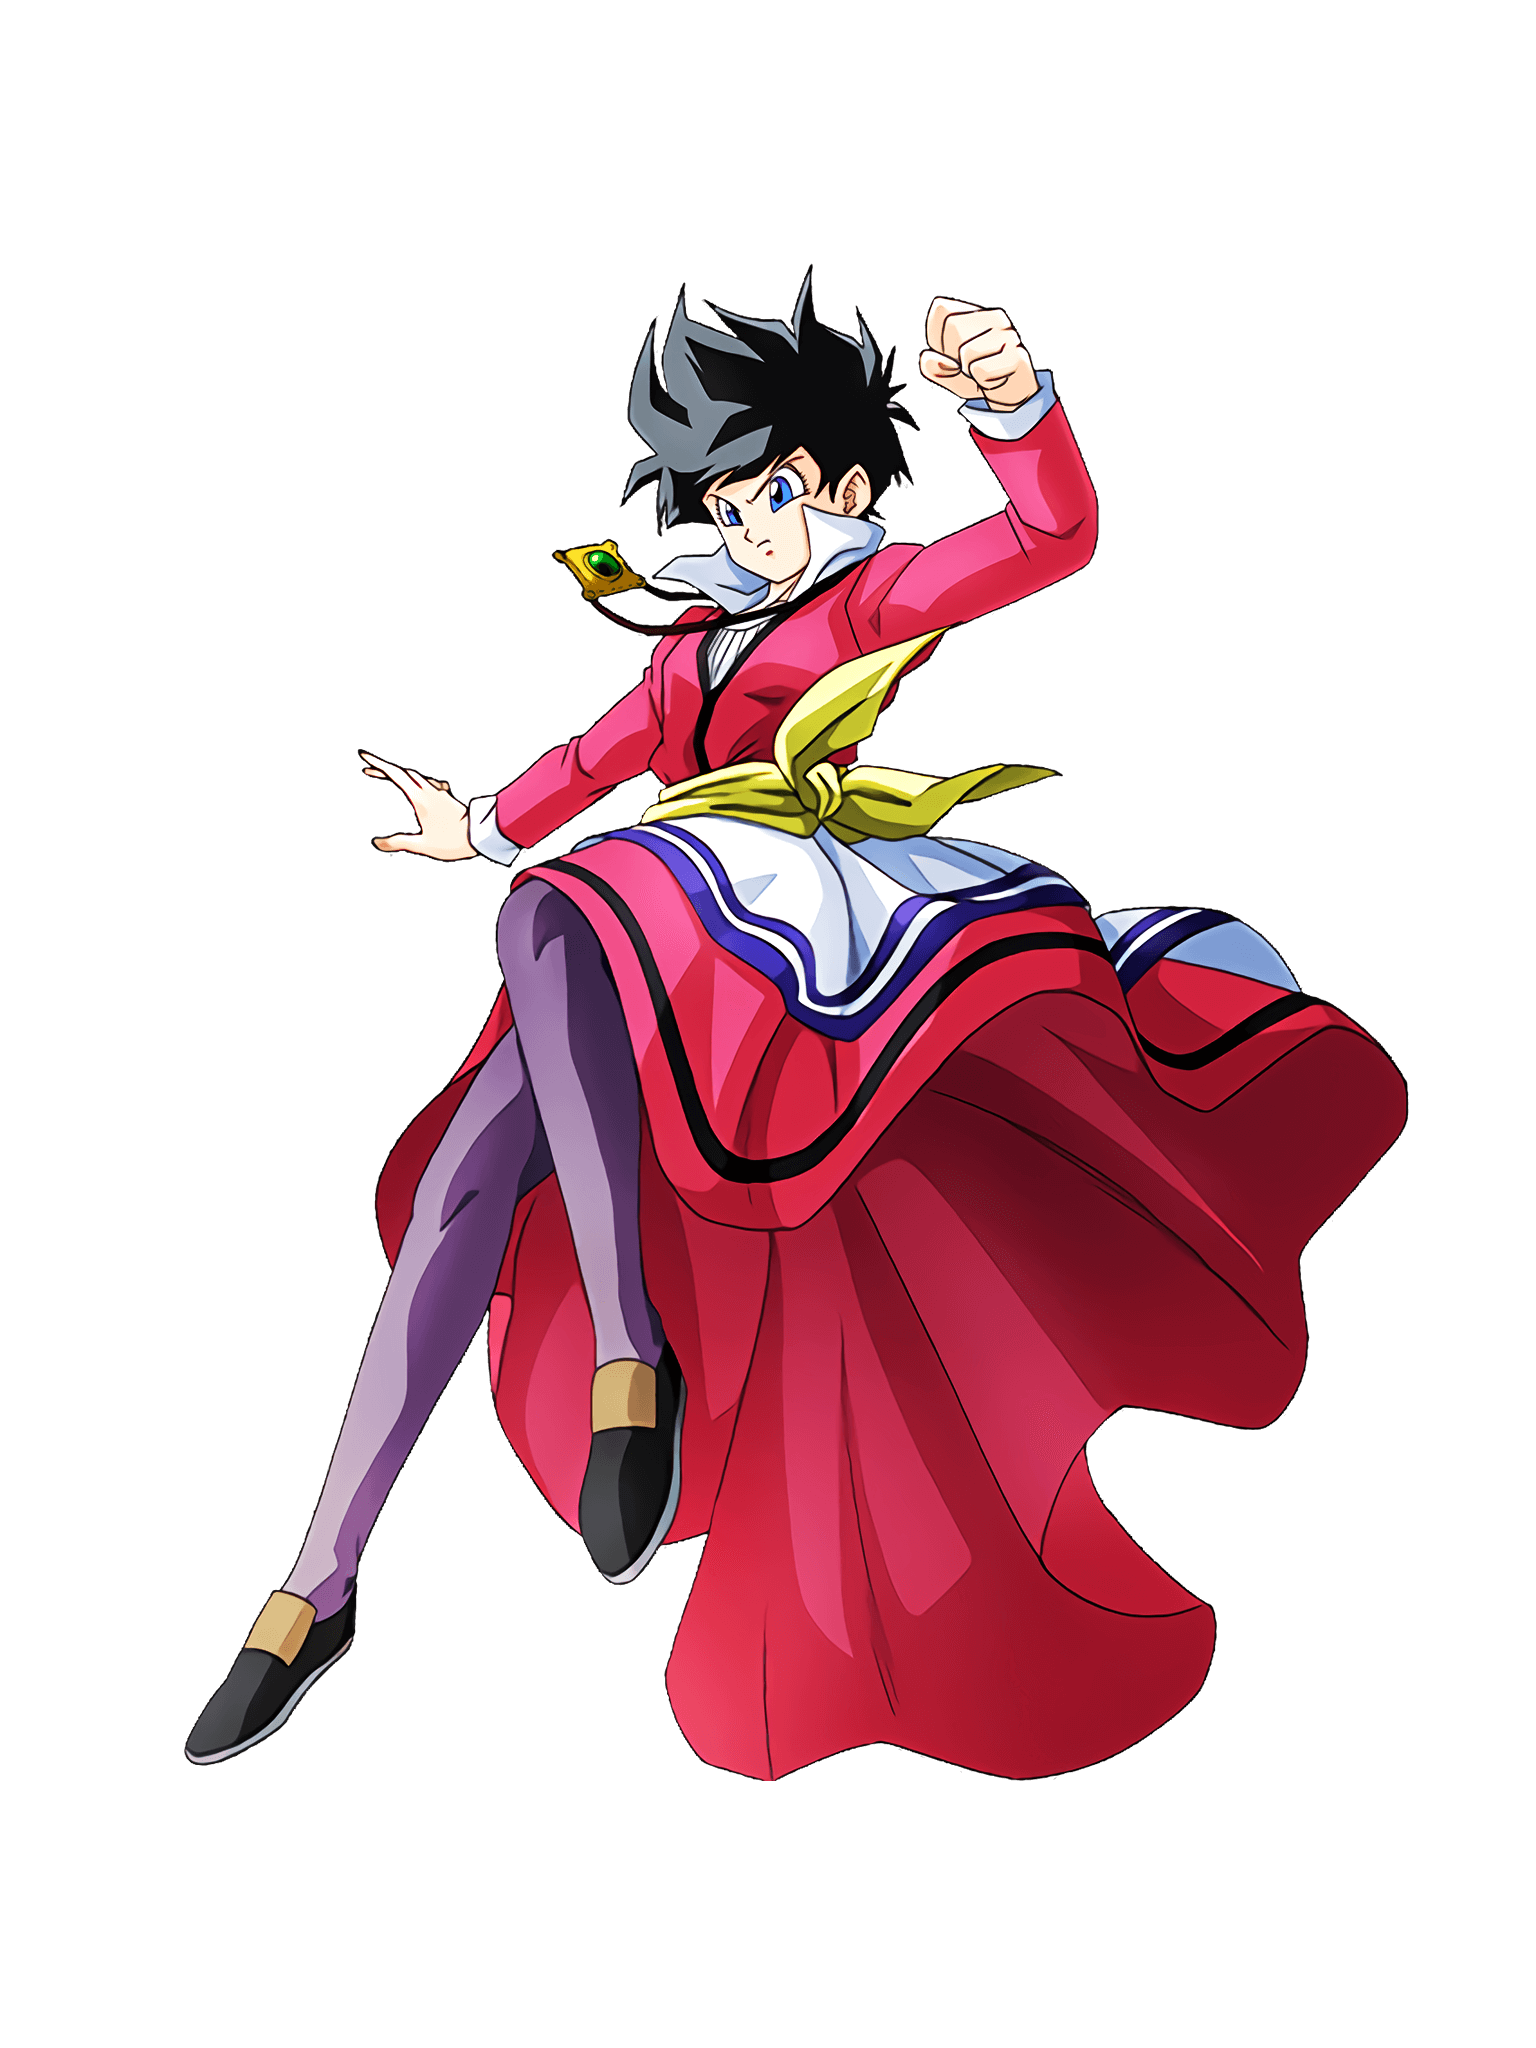 Indomitable Frontal Breakthrough Videl Render (Dragon Ball Z Dokkan Battle) .png